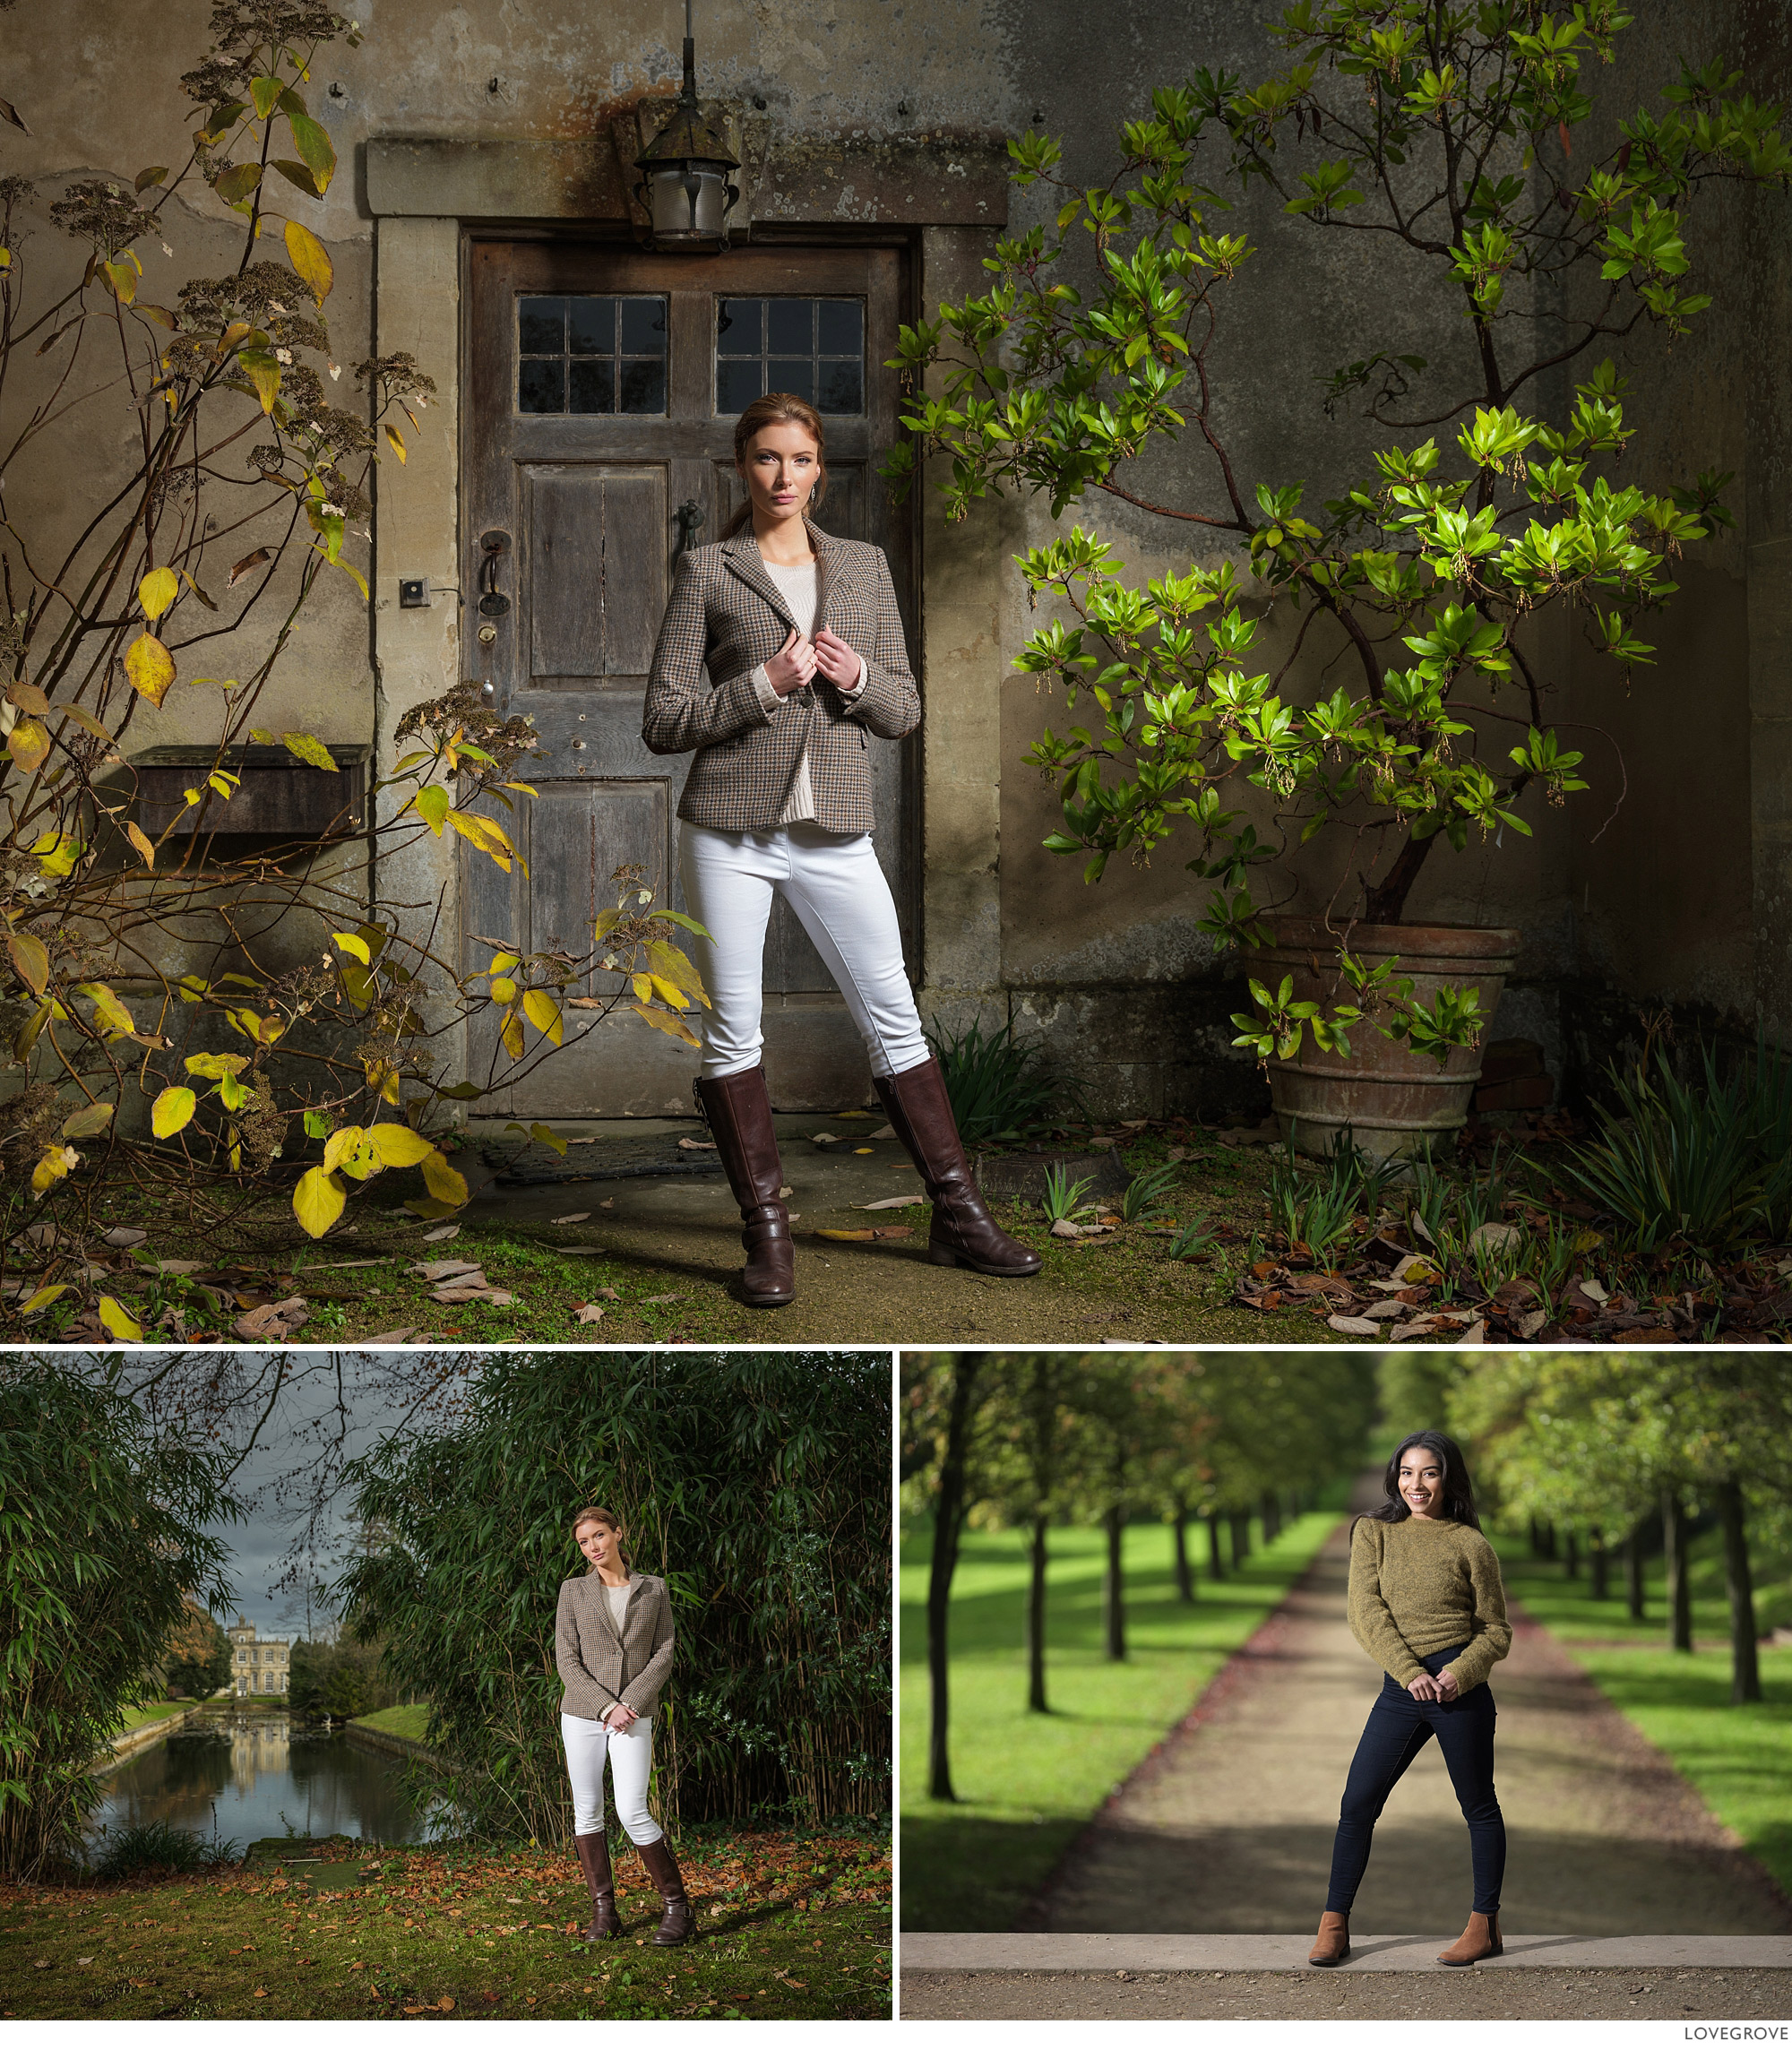 Flash off camera for editorial photography